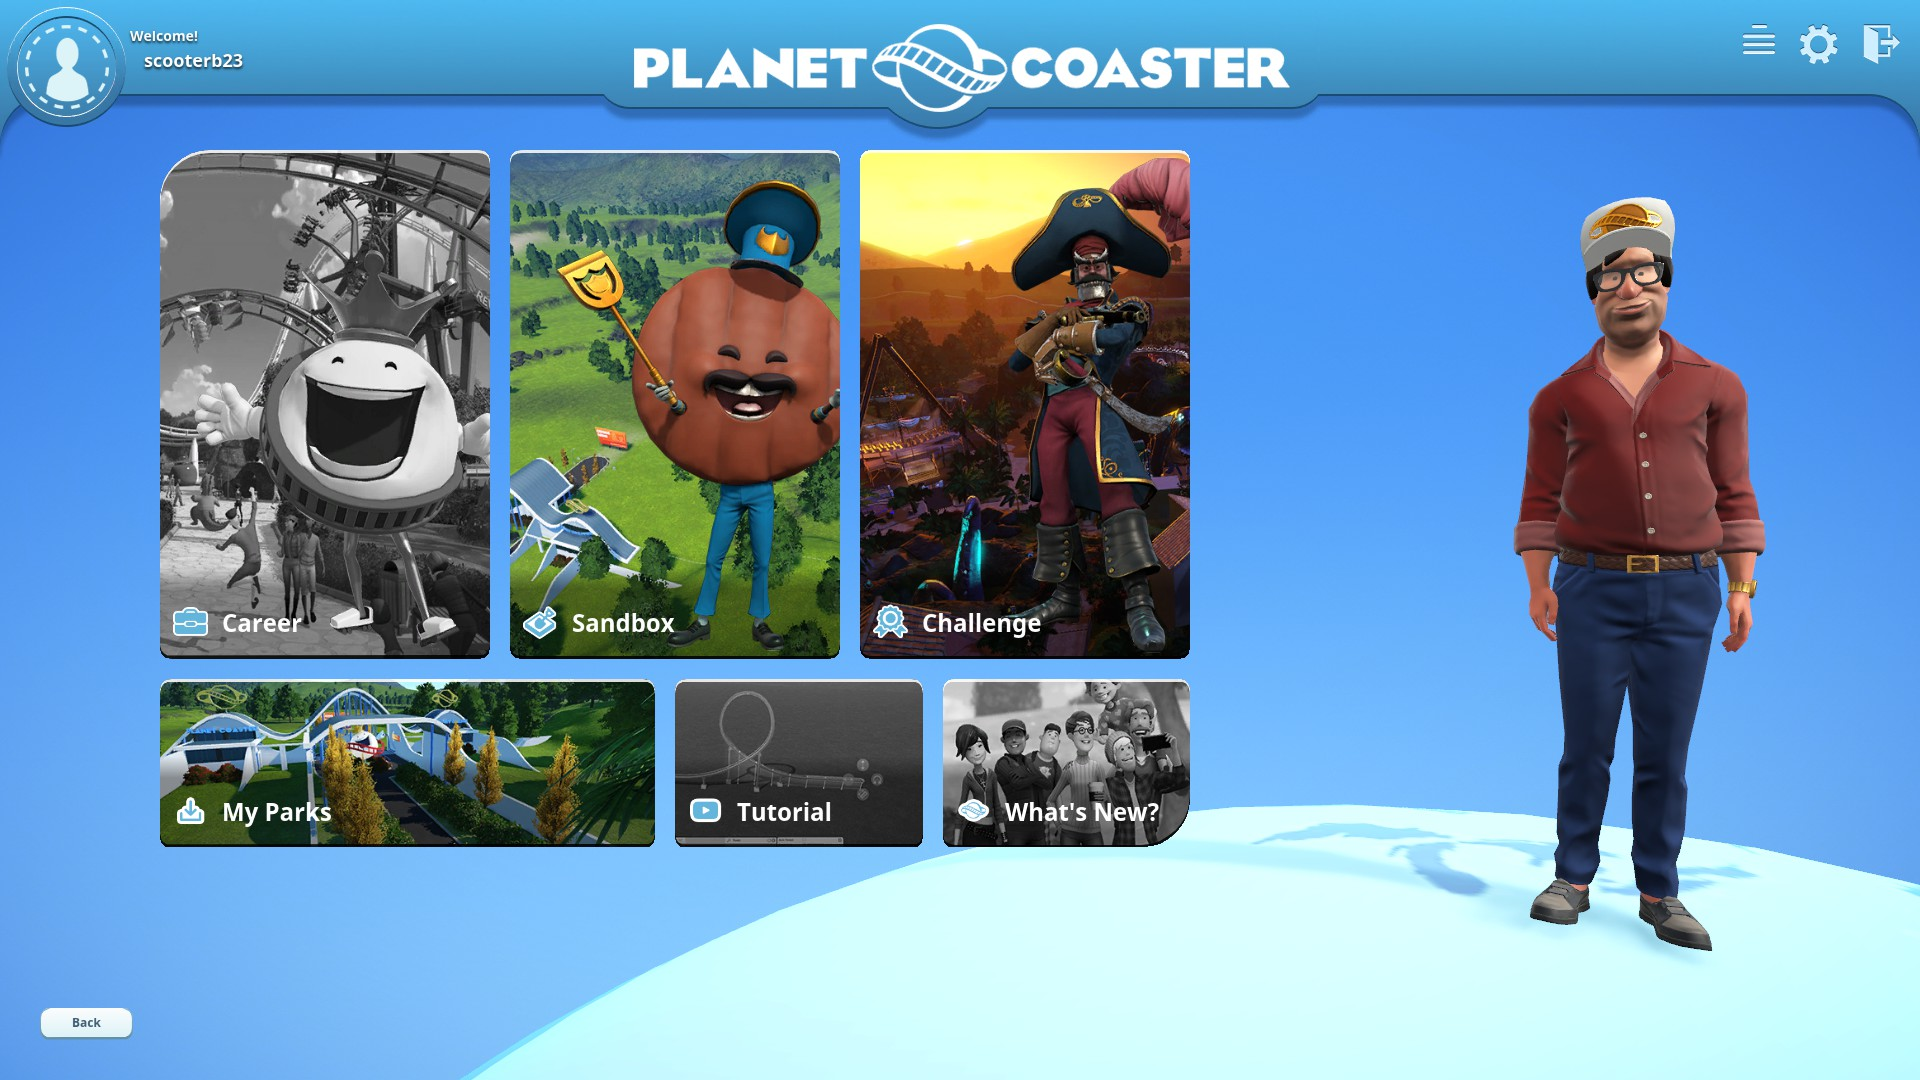 The menu screen with my personal avatar.